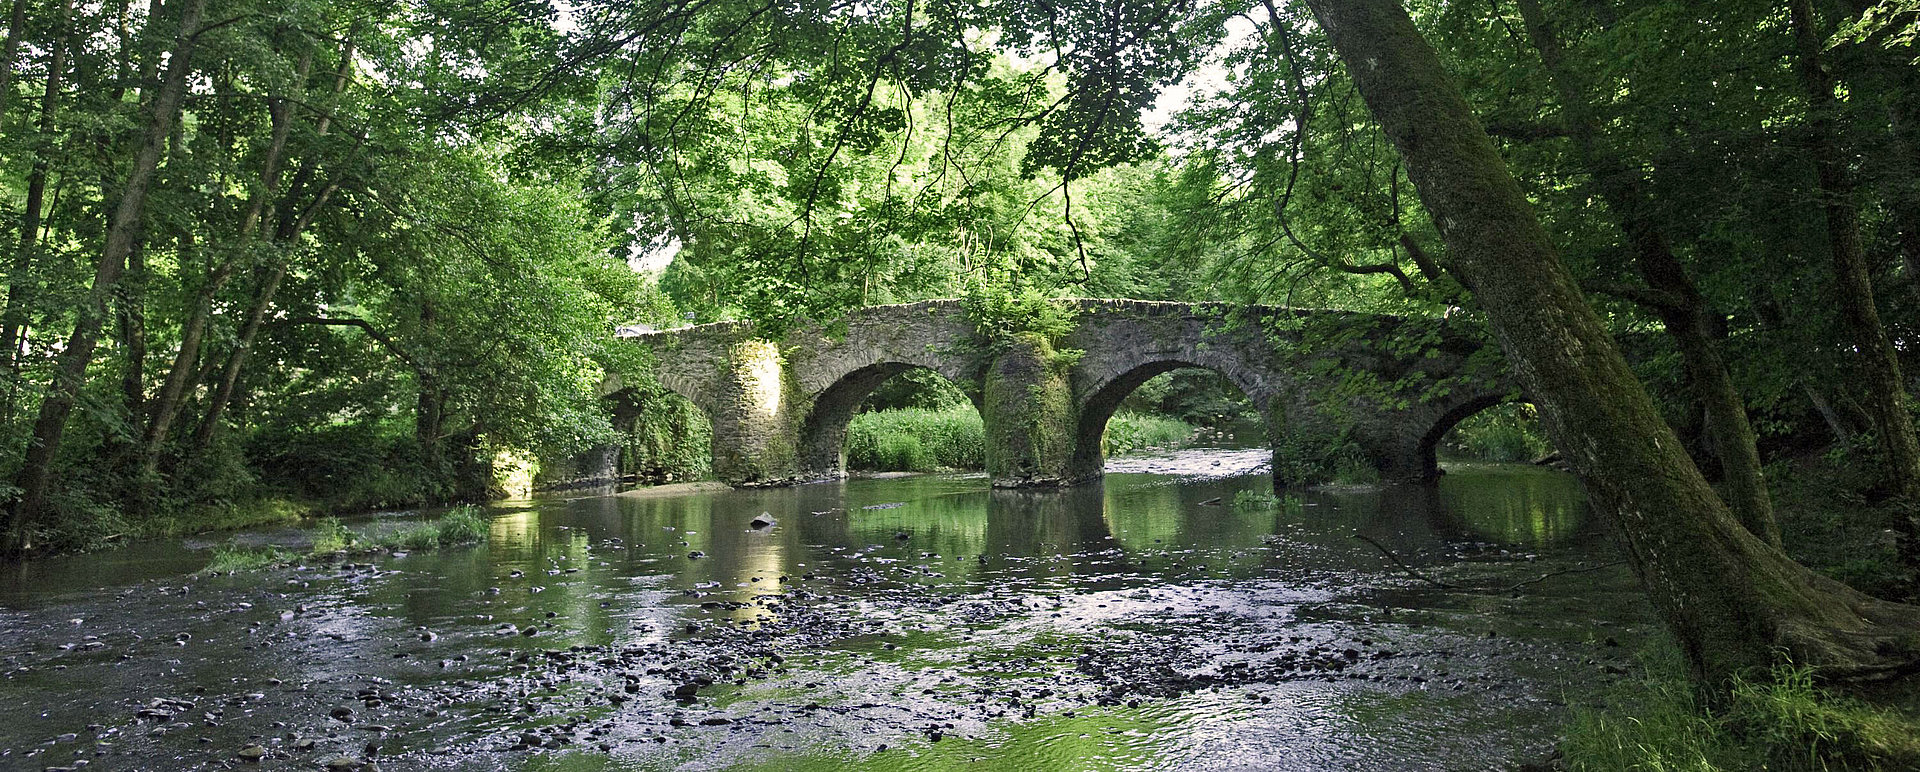 Bridge in the valley of the Nister, Westerwald